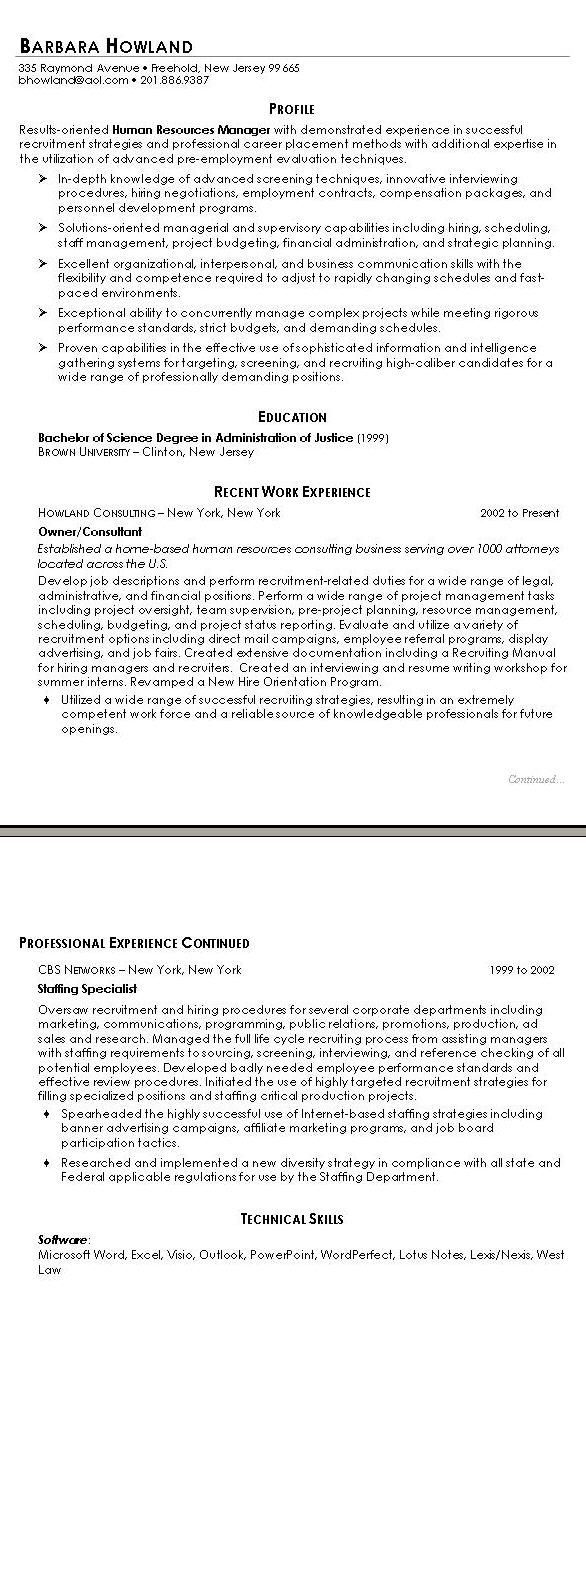 worked from home resume sample Working from home, Resume